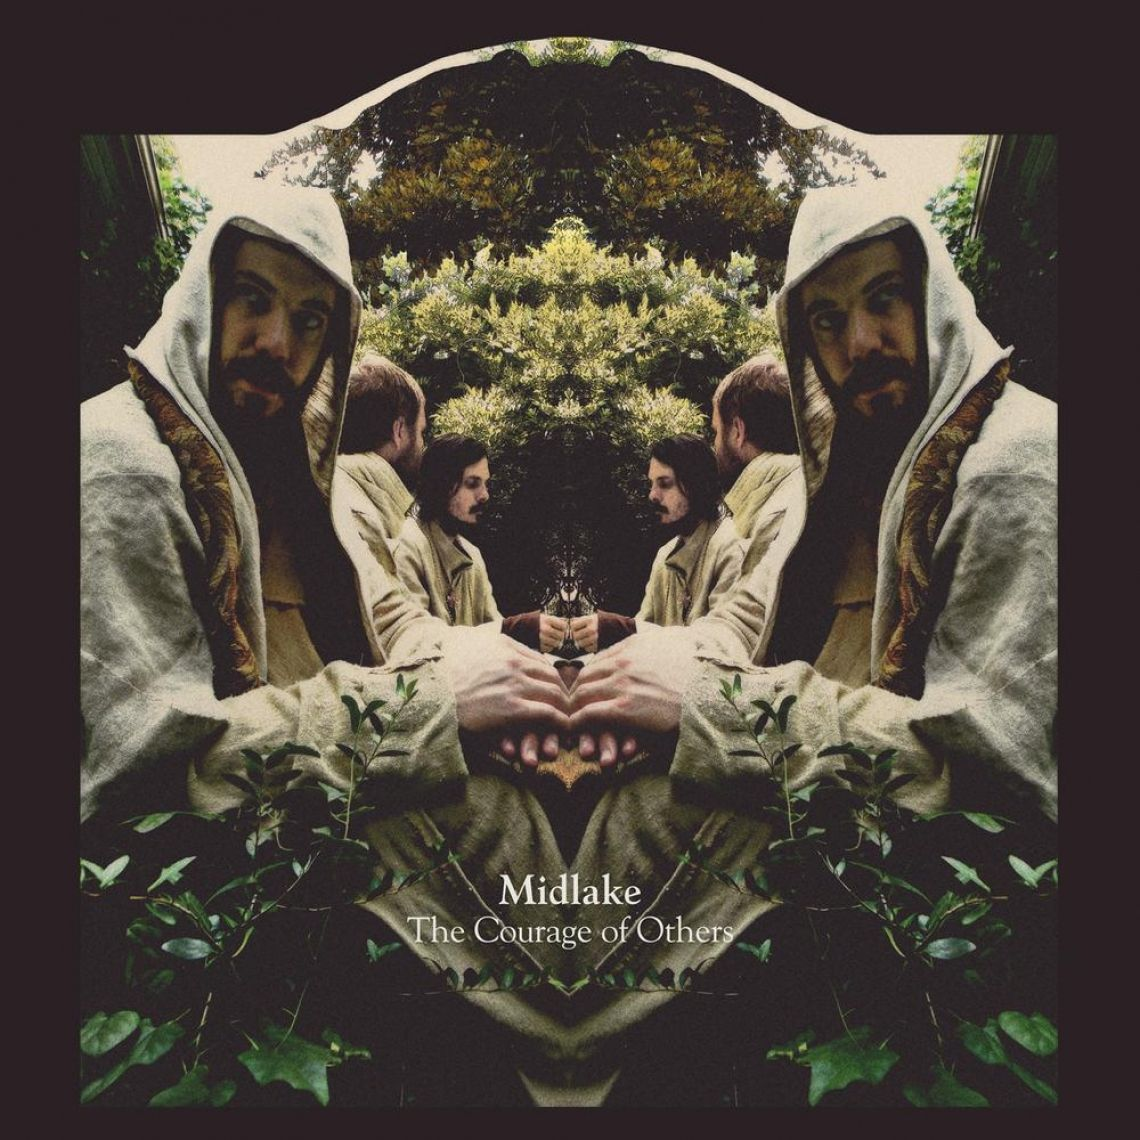 Midlake - album The Courage of Others